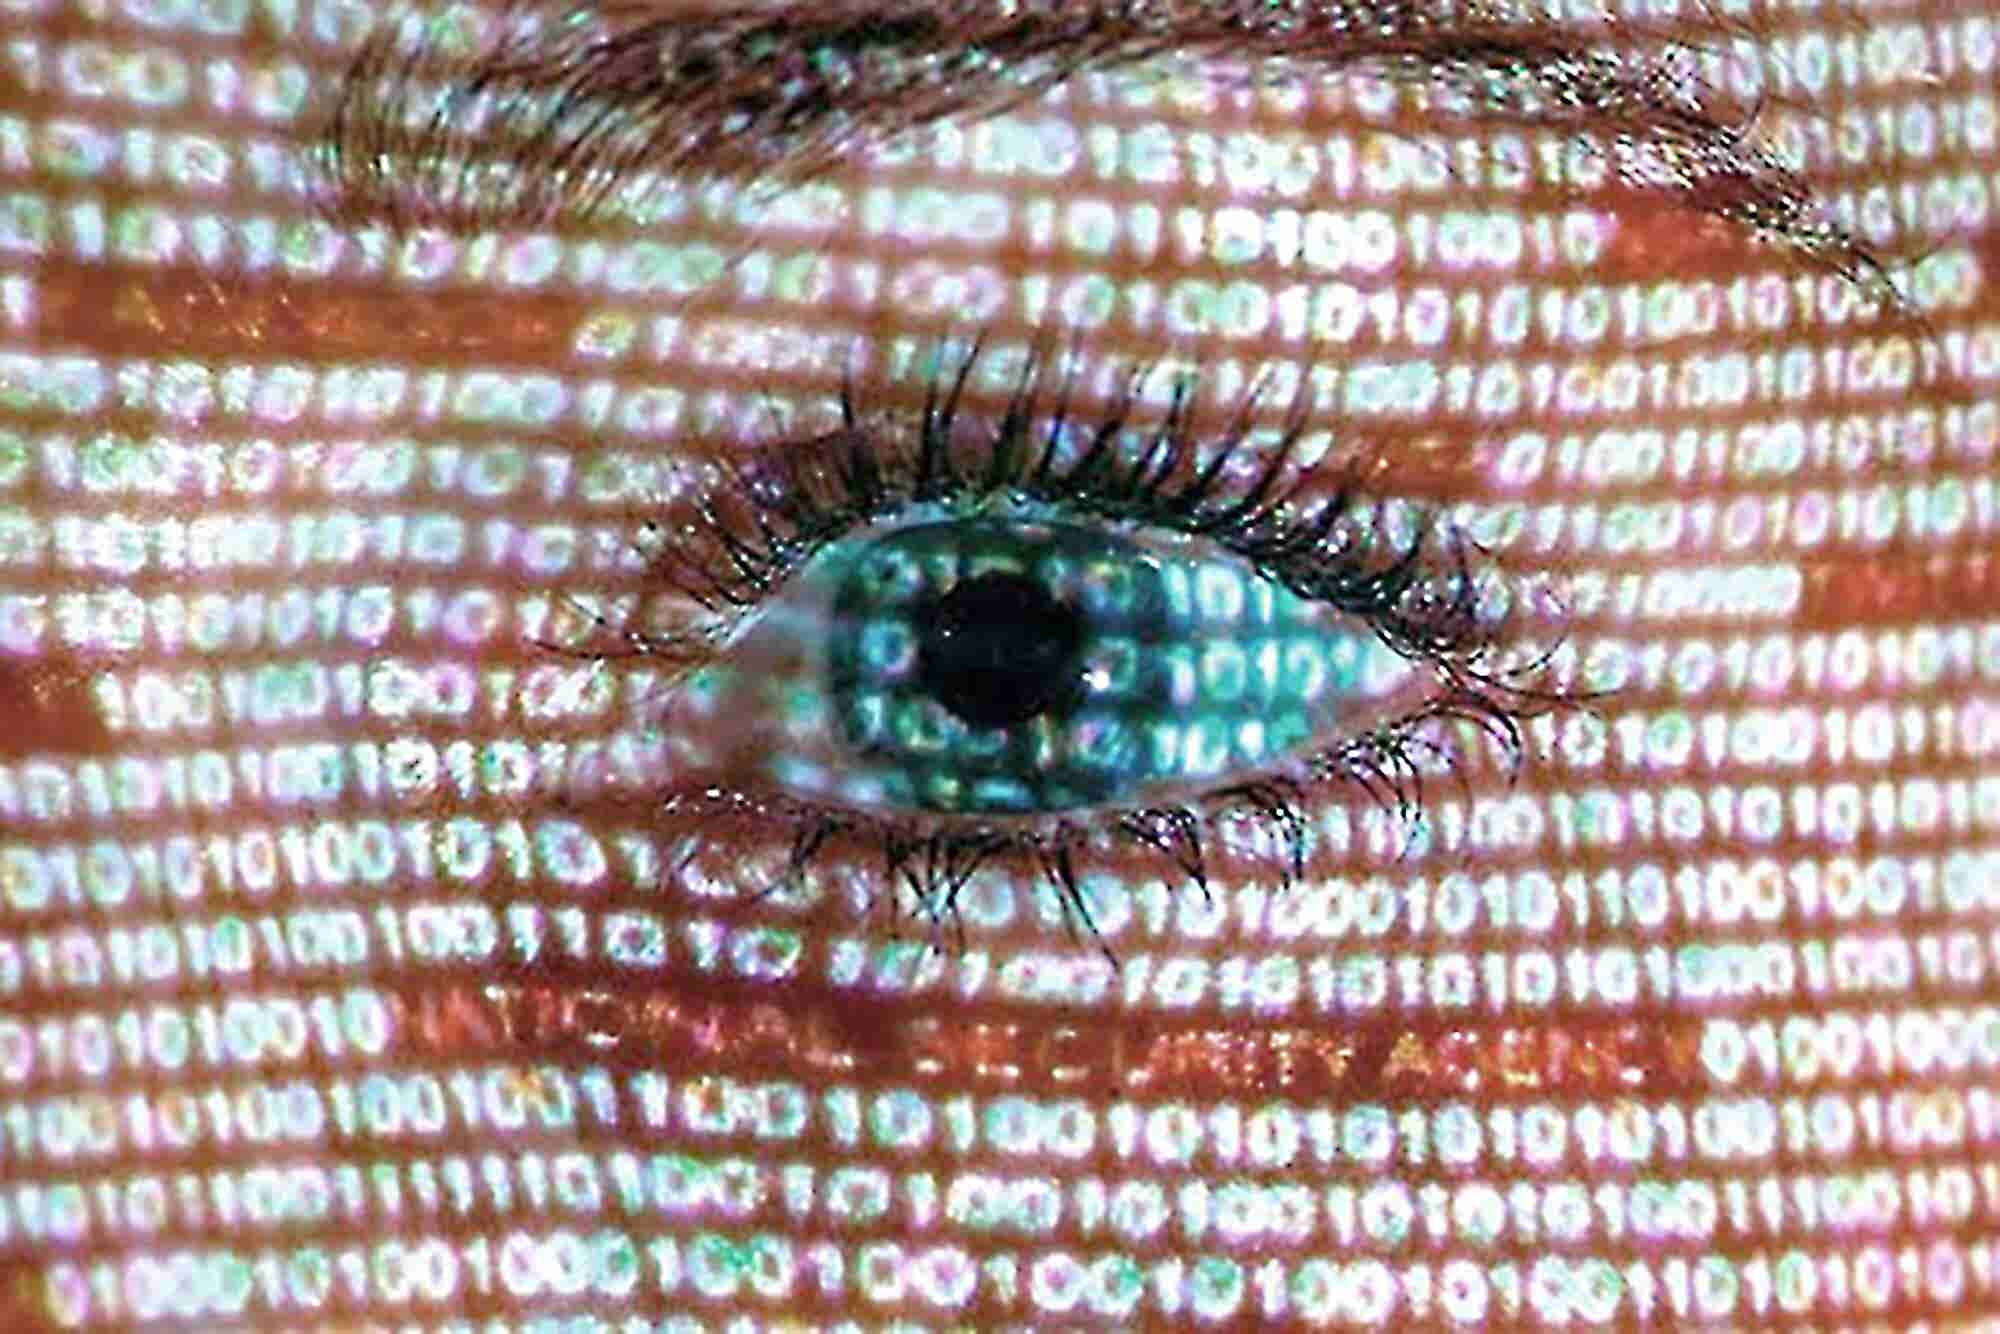 Internet Activists Plan Day of Action to Protest Mass Surveillance